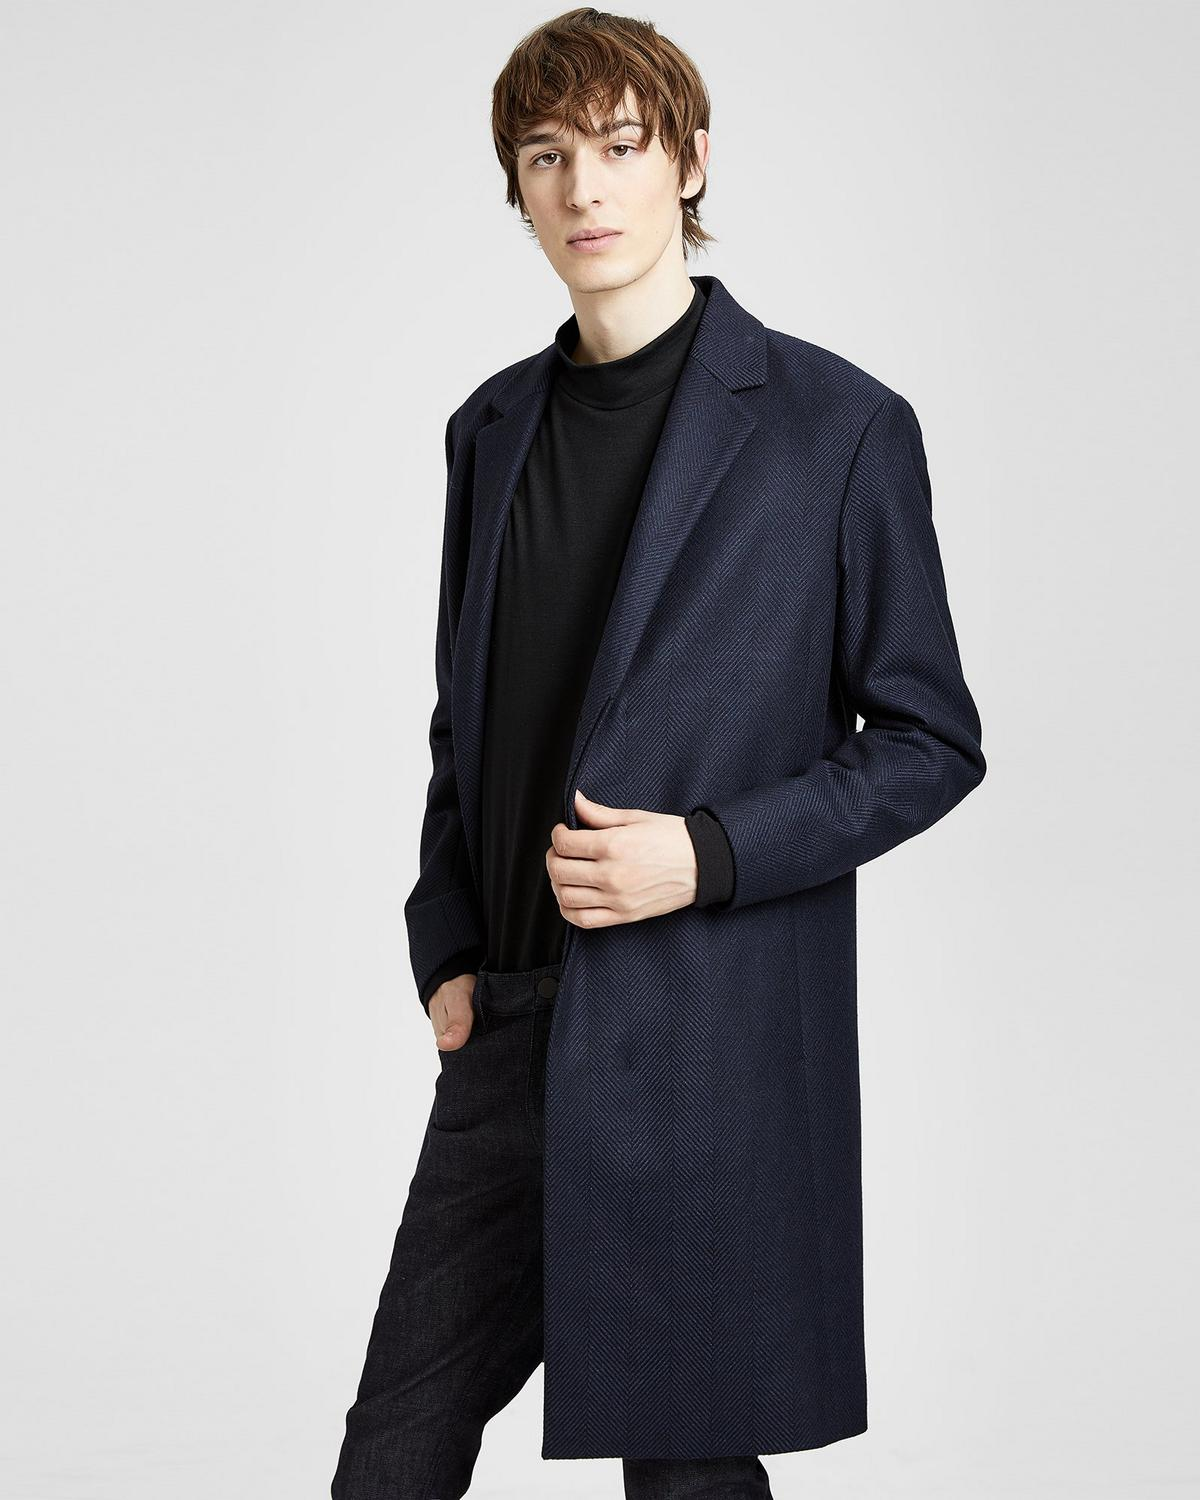 Wool Herringbone Tailored Top Coat